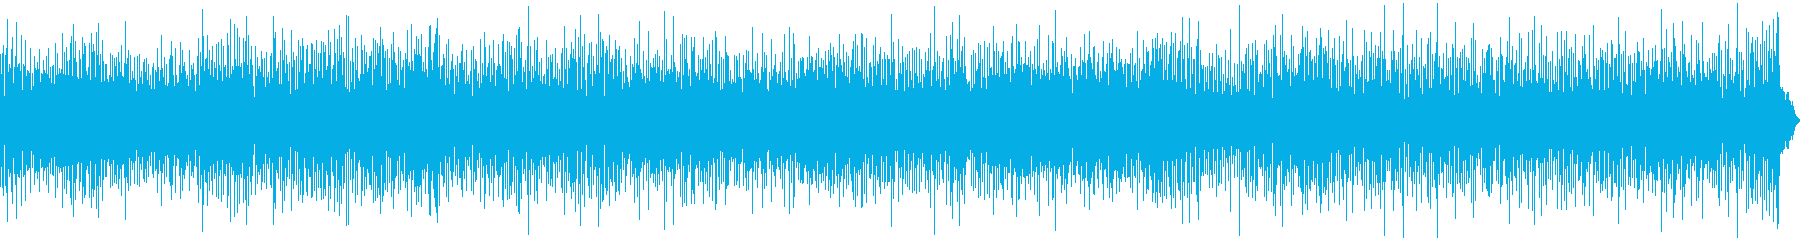 A country band on a harvest festival day's reproduced waveform